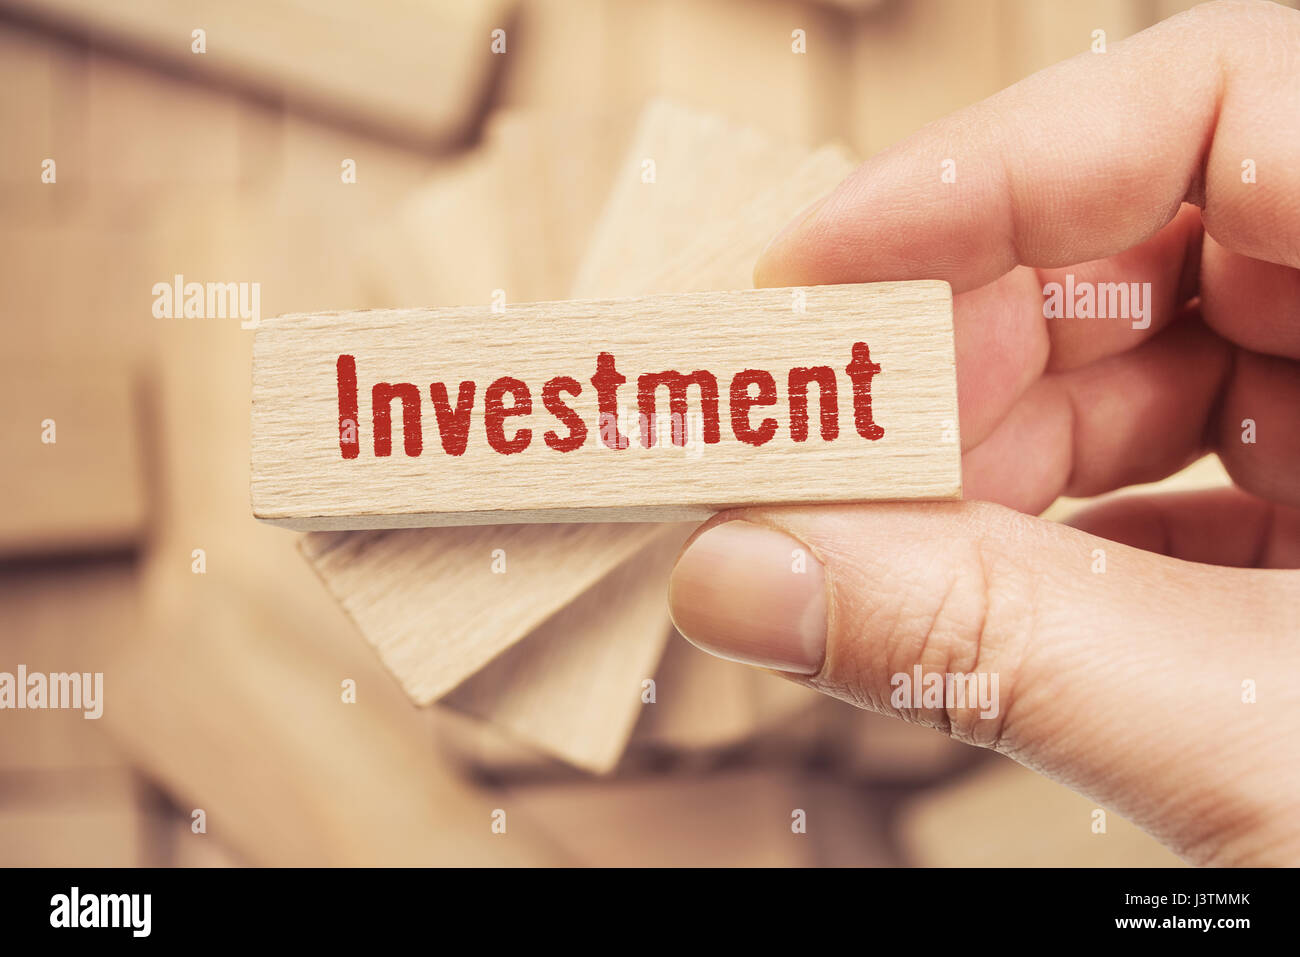 investment word written on wood block - Stock Image